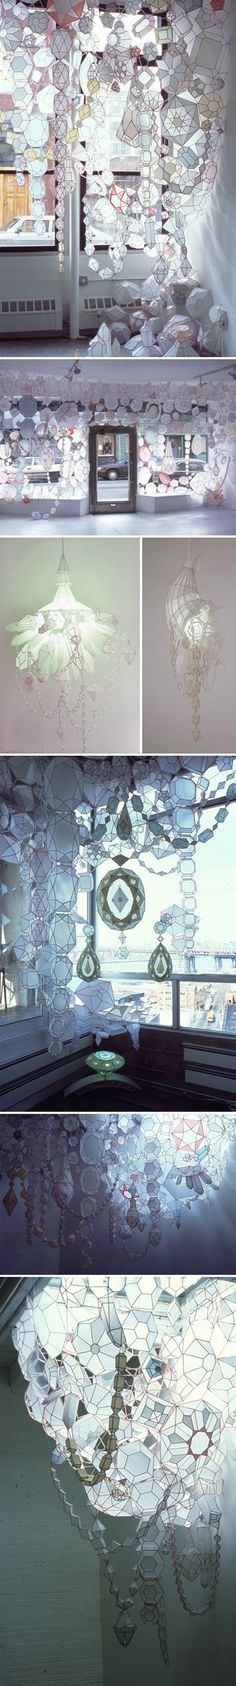 Kirsten Hassenfeld // installation. Paper Diamonds. Swoon.